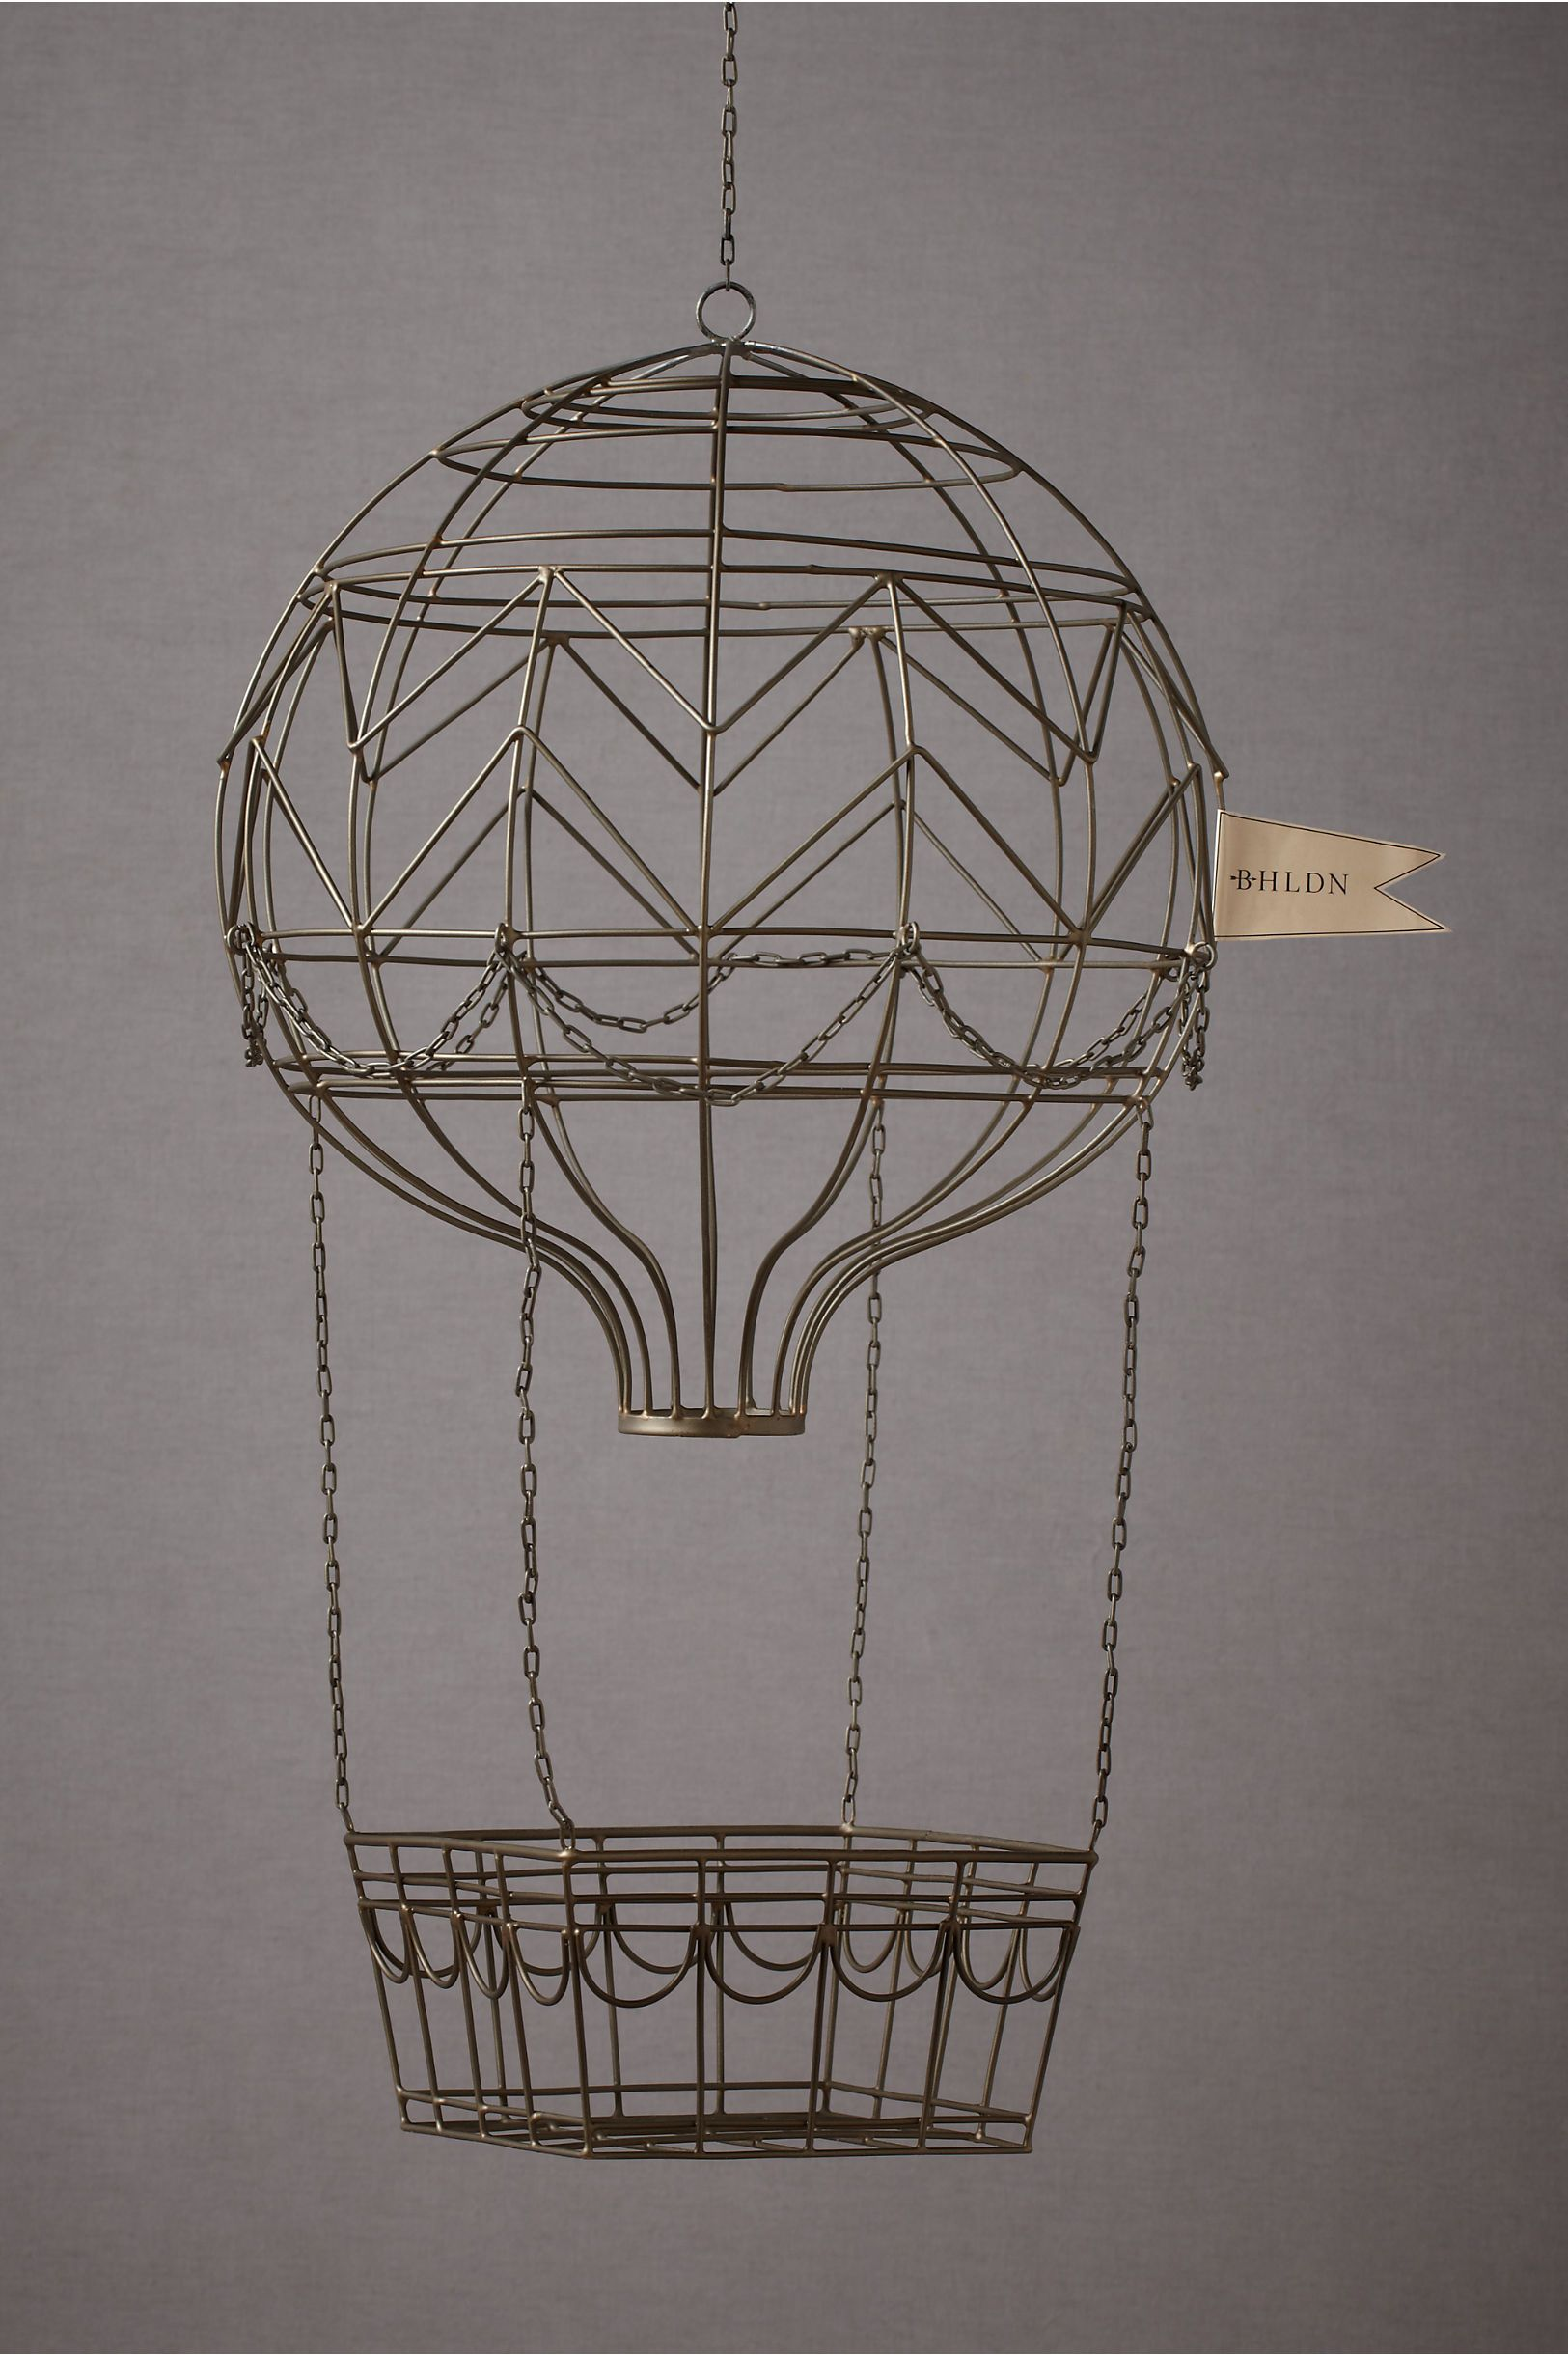 Hovering Hot Air Balloon in SHOP Décor Signage at BHLDN | Design ...